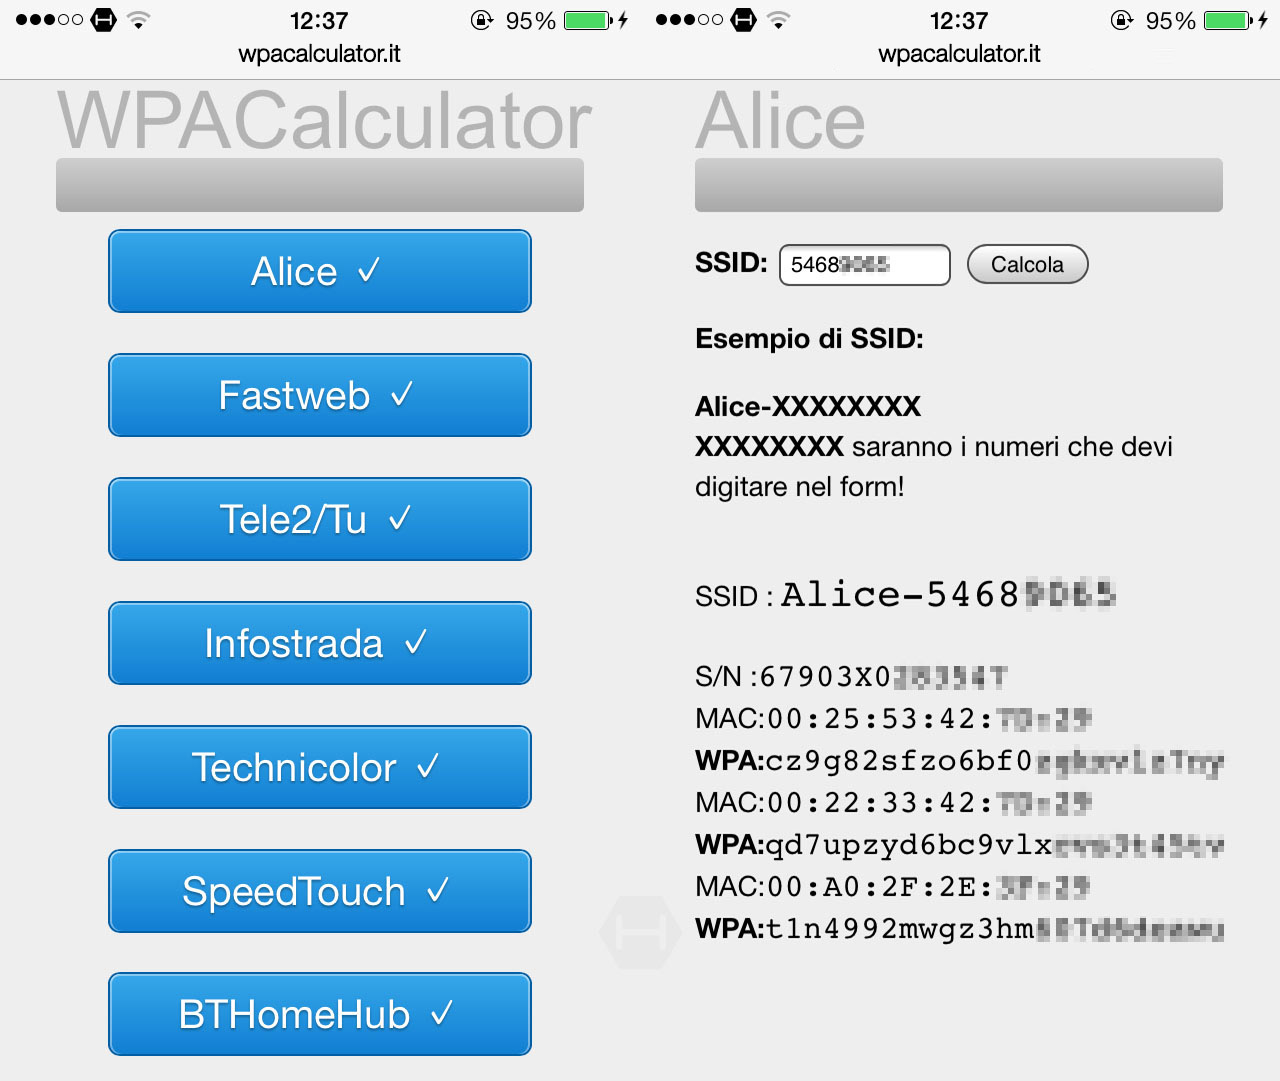 Scoprire la password o la chiave di un router con WPACalculator